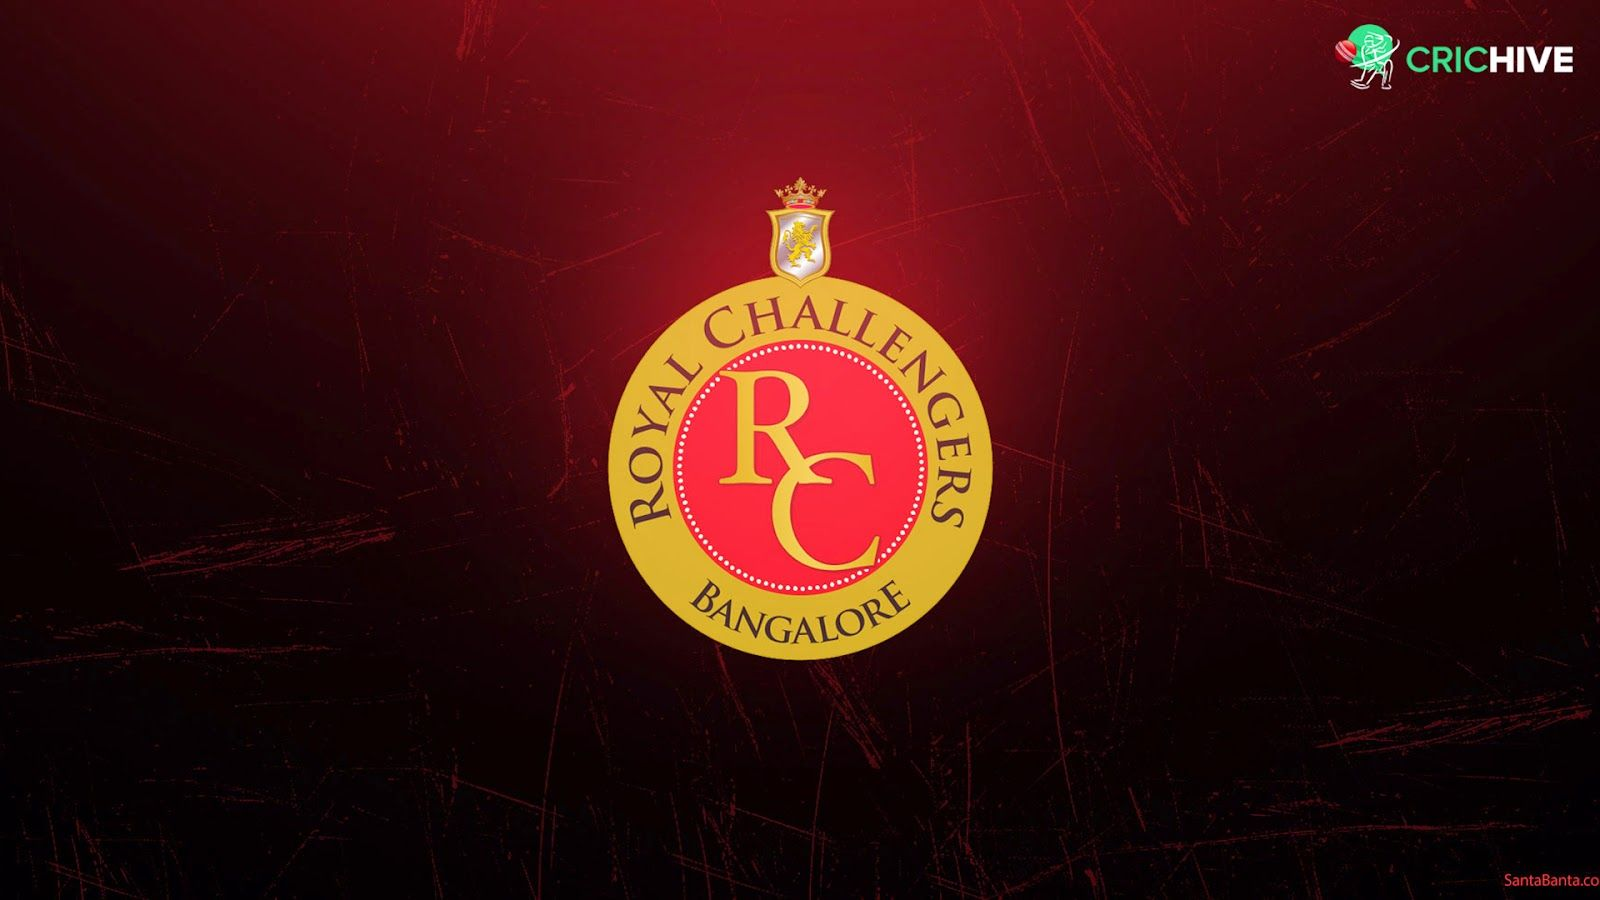 Download ipl 2015 hd wallpapers for desktop and mobile hd 1080p download ipl 2015 hd wallpapers for desktop and mobile hd 1080p biocorpaavc Image collections